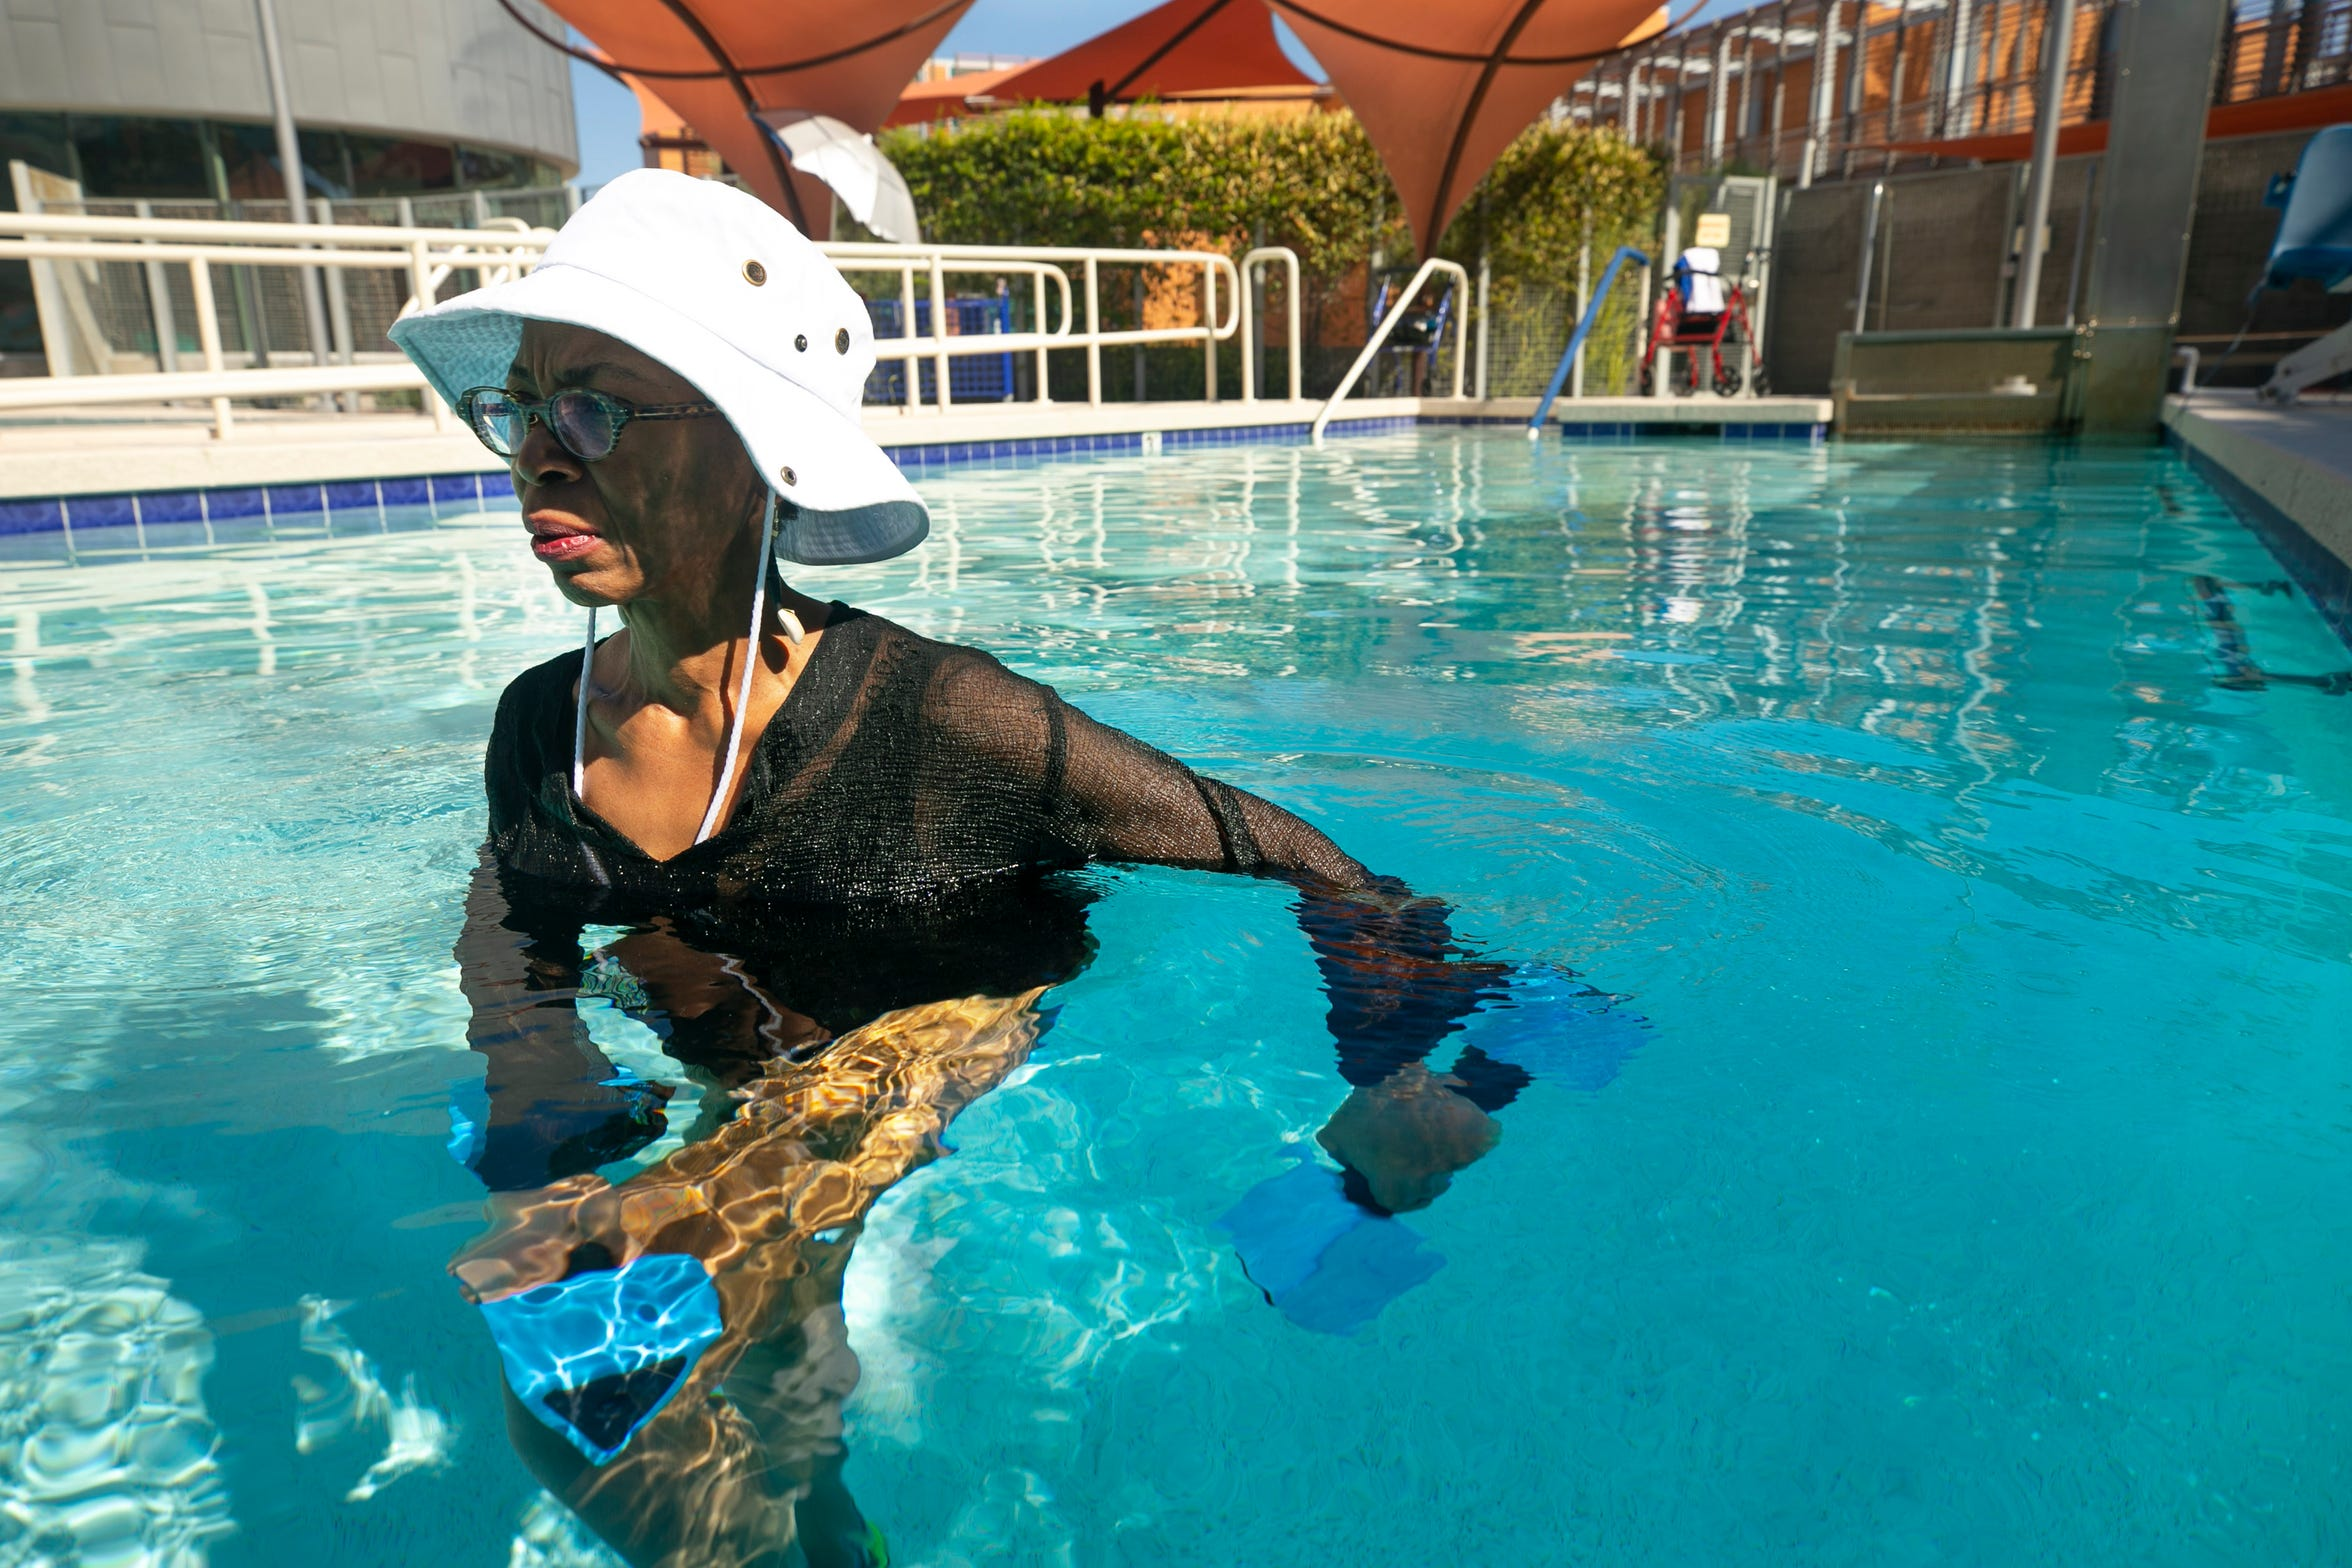 Oneka Temple, 50, of Laveen, does exercises therapy pool at Ability360, a Phoenix fitness and community center for people with disabilities, on Aug. 14, 2020.